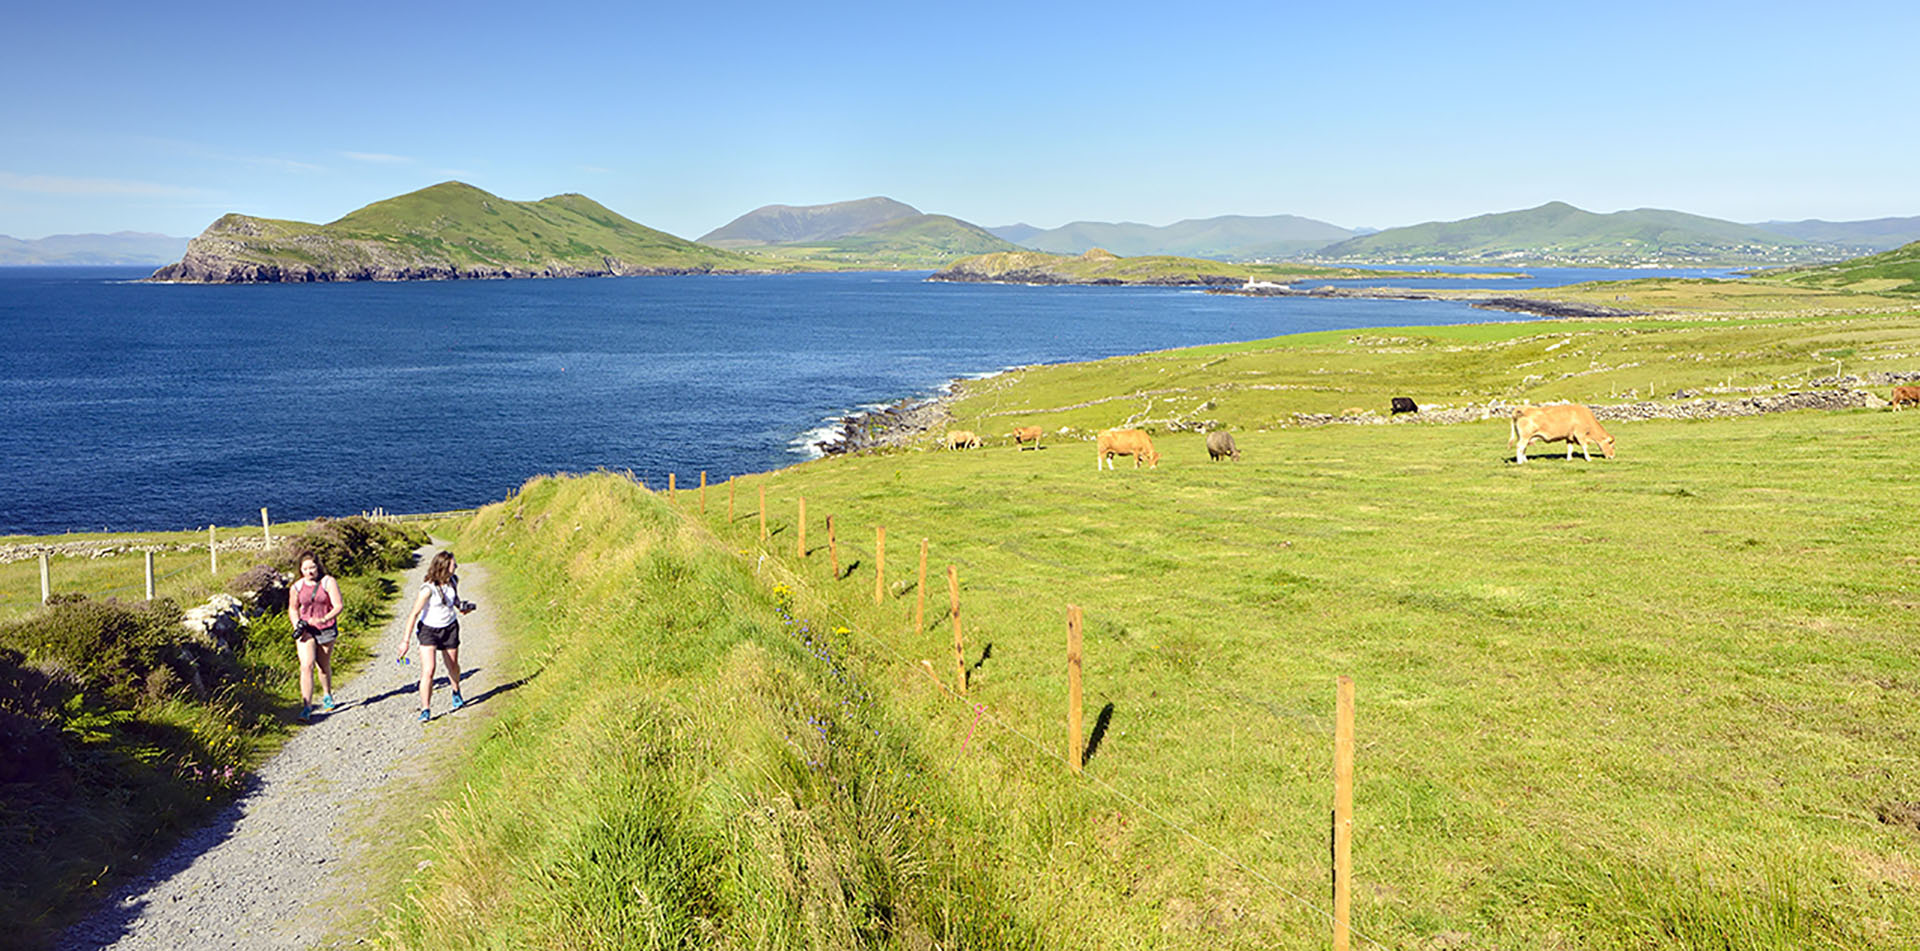 Ireland Europe Scenery Group Walking Countryside Hiking Travel - luxury vacation destinations